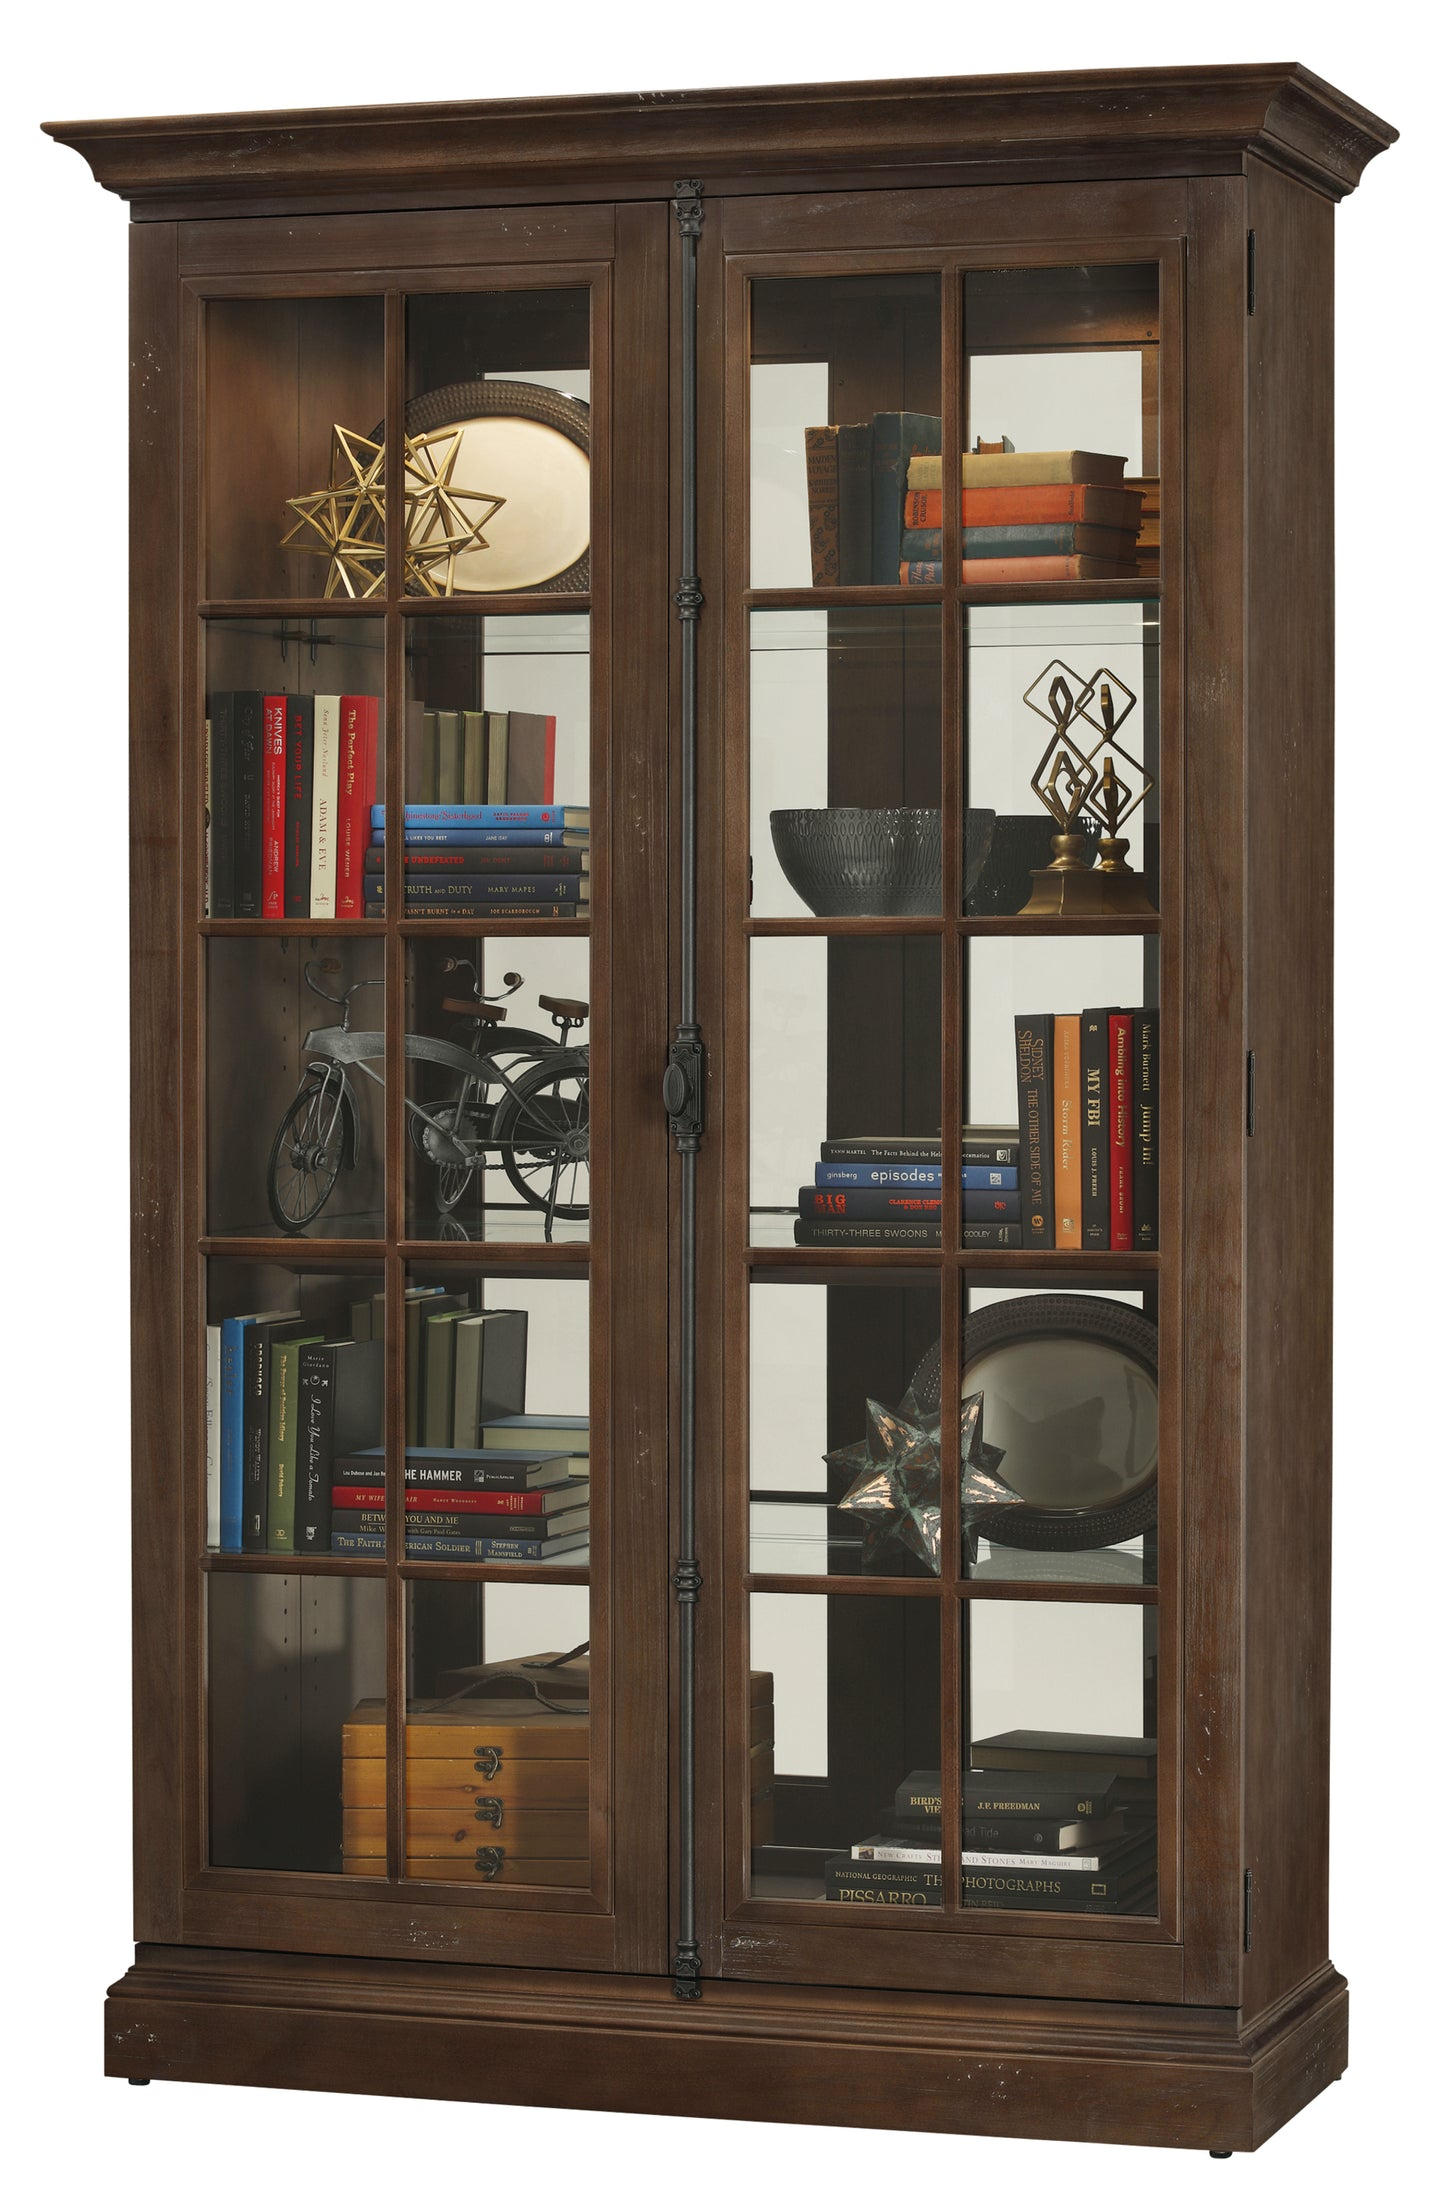 Howard Miller Clawson Display Cabinet 670020 - Curios And More